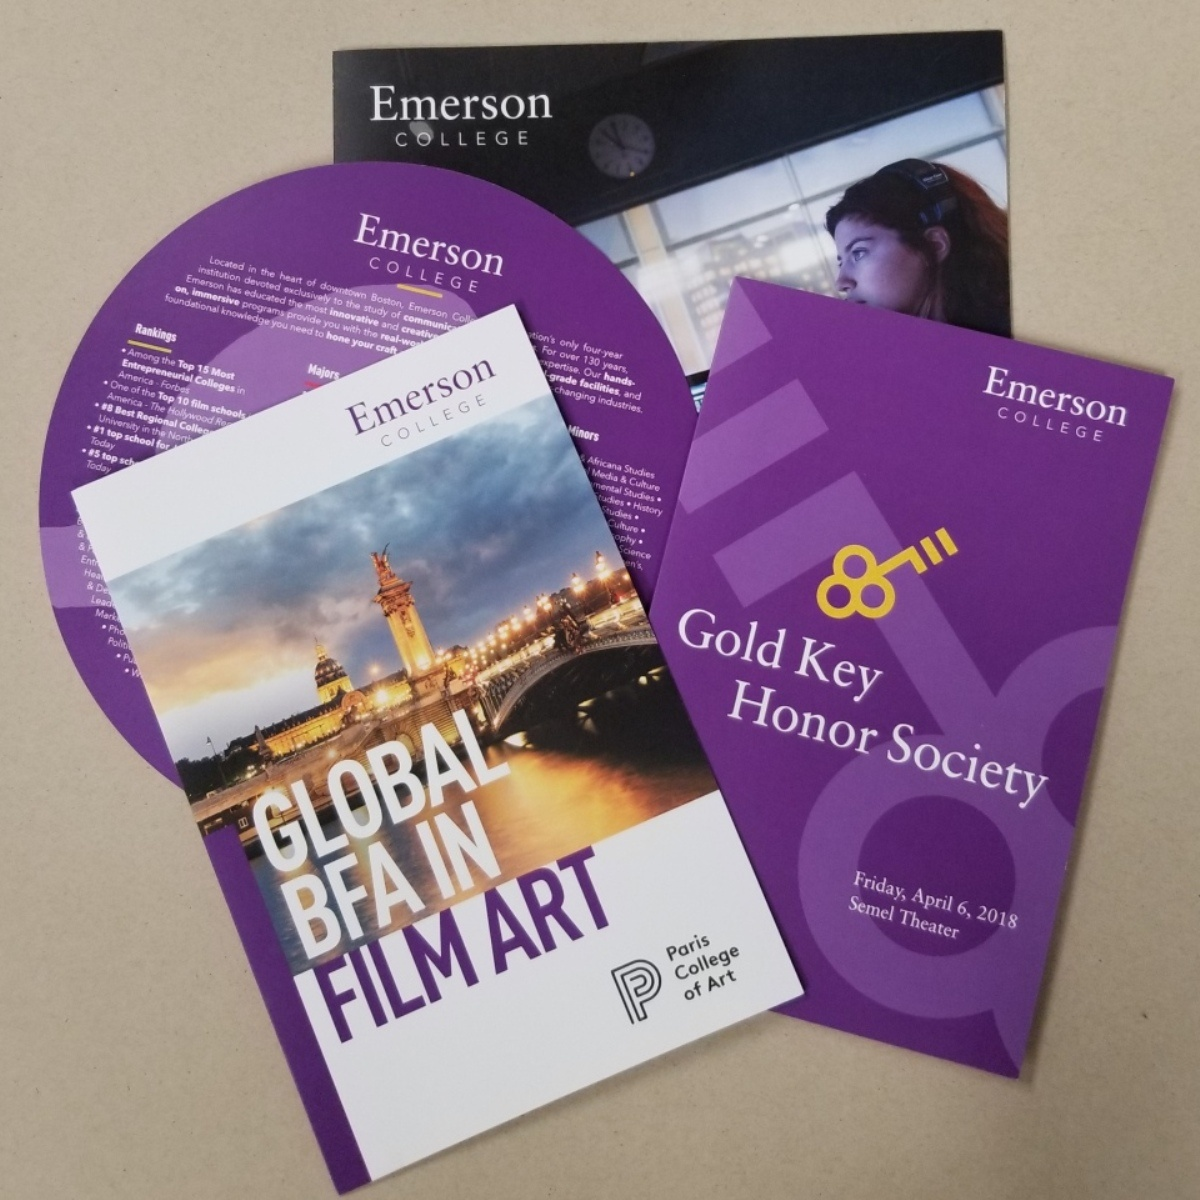 Selection of purple and gold Emerson College digitally printed materials